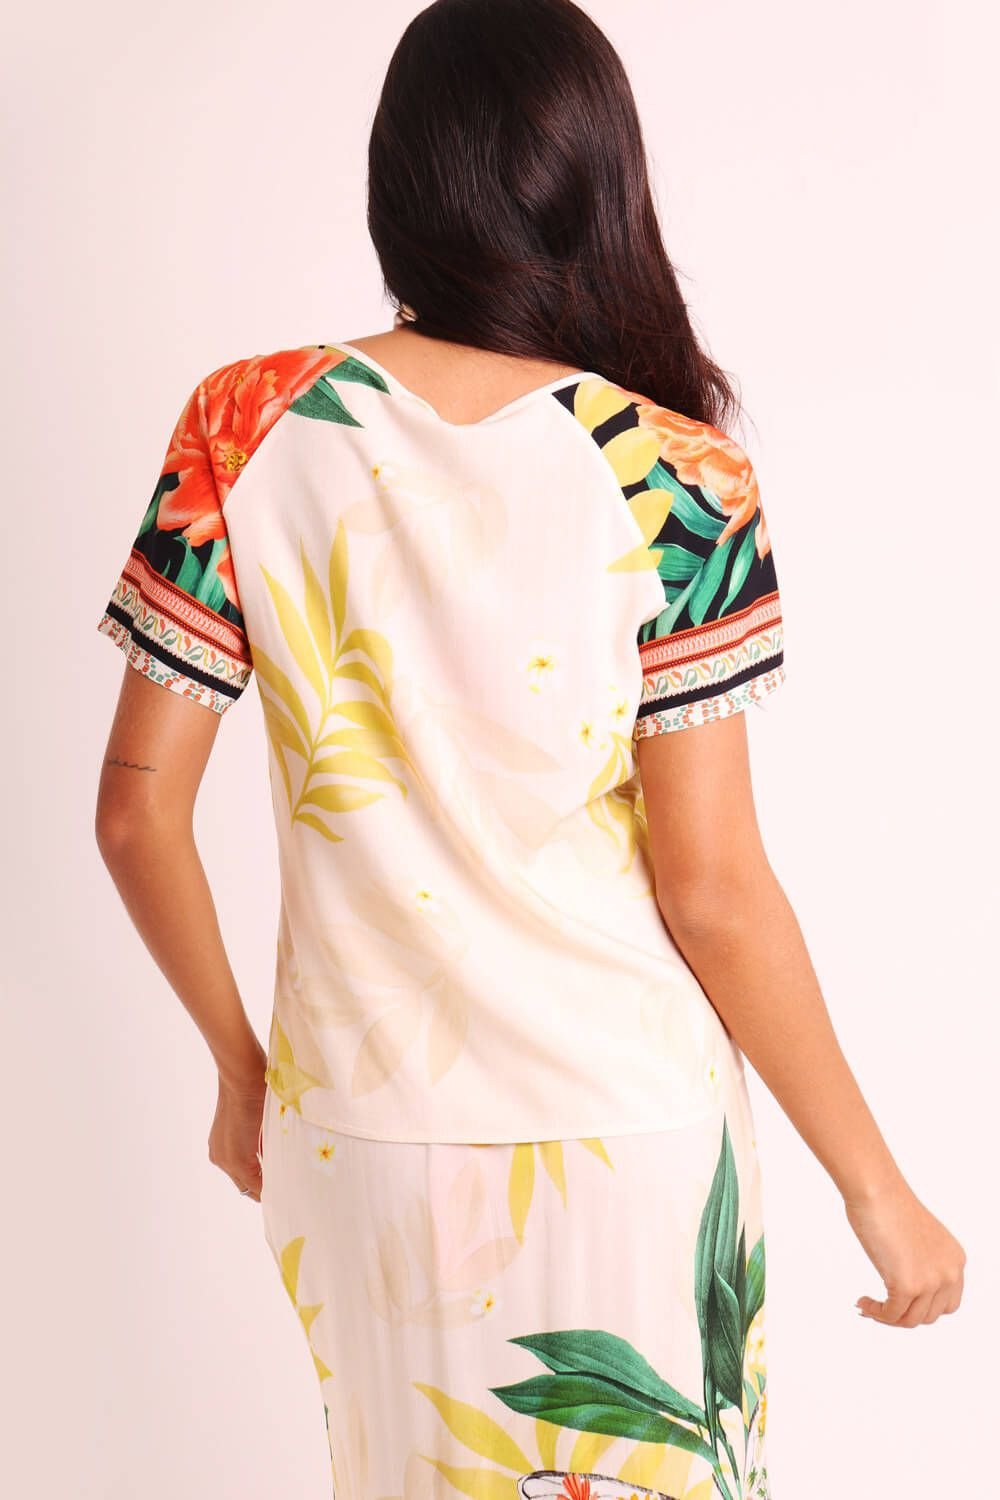 BLUSA ESTAMPADA BORBOCHITA OFF WHITE*